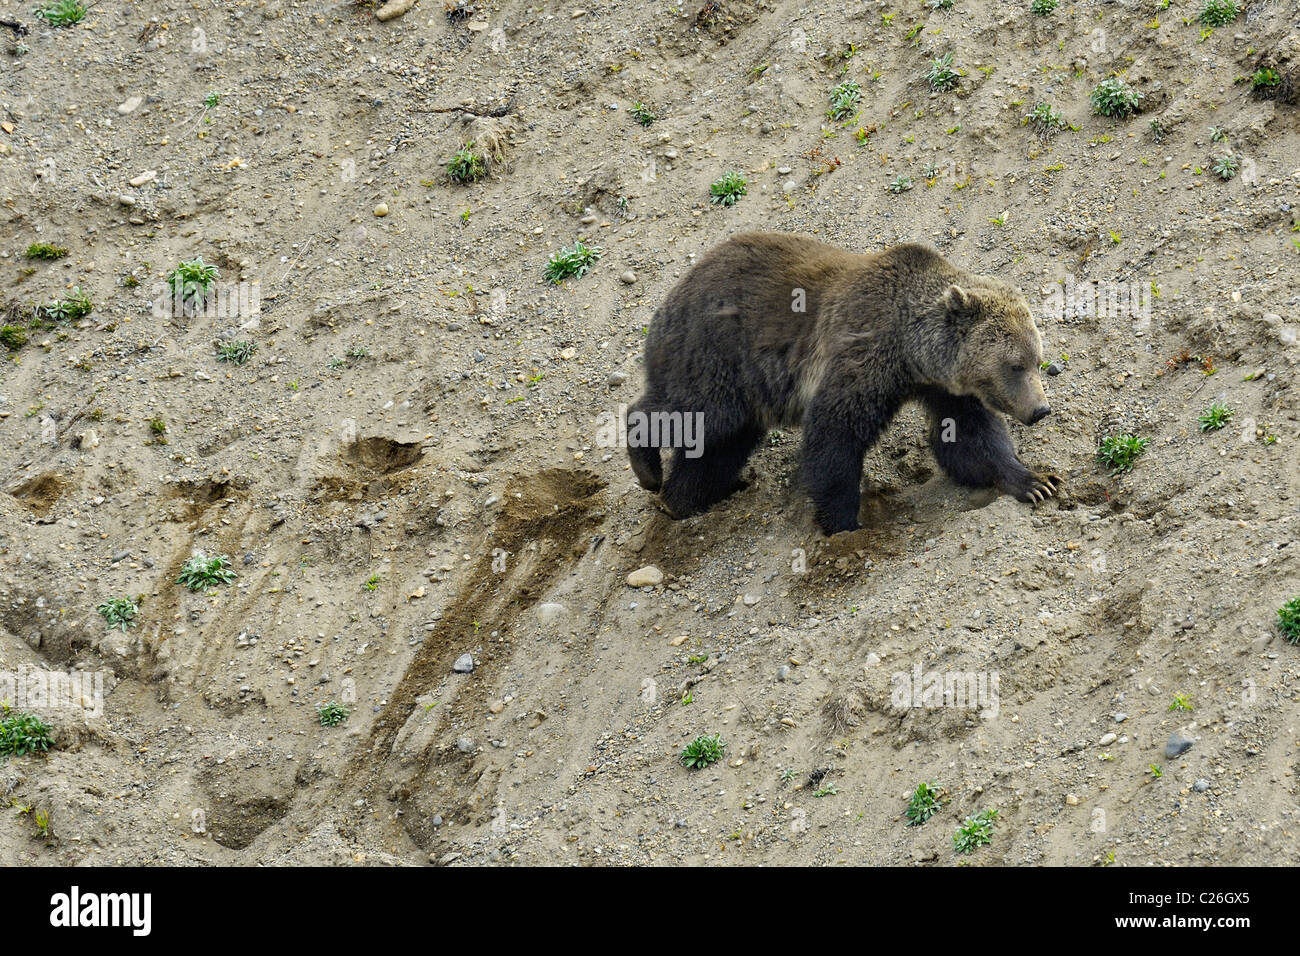 Grizzly Bear traversing a sandy slope in Yellowstone National Park. - Stock Image